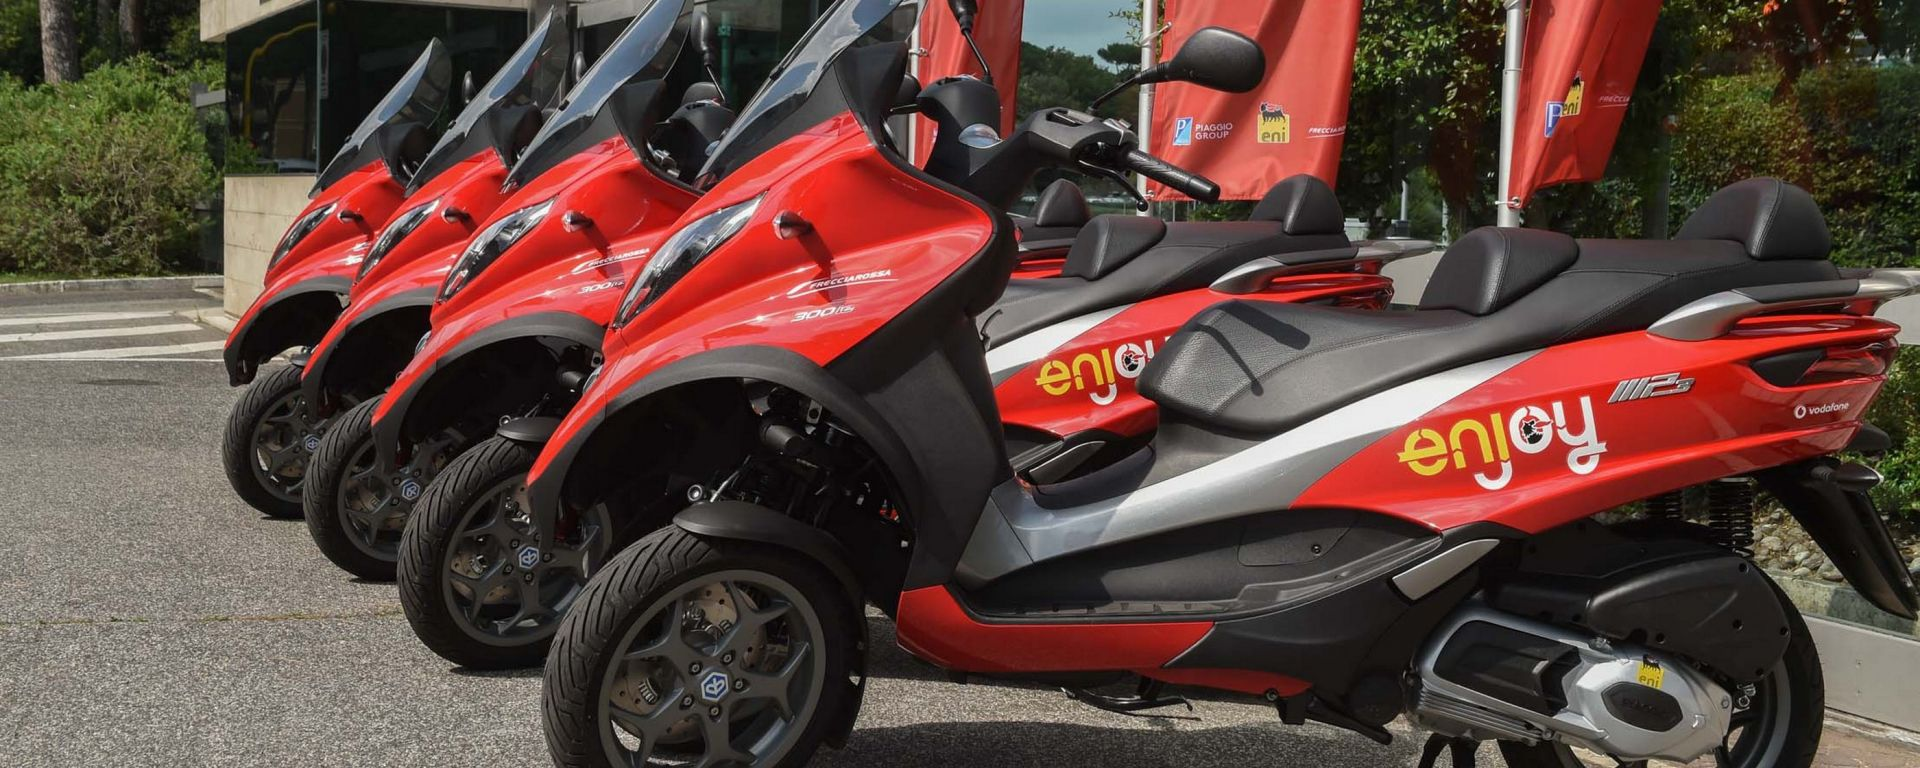 Eni Enjoy: lo scooter sharing arriva a Roma